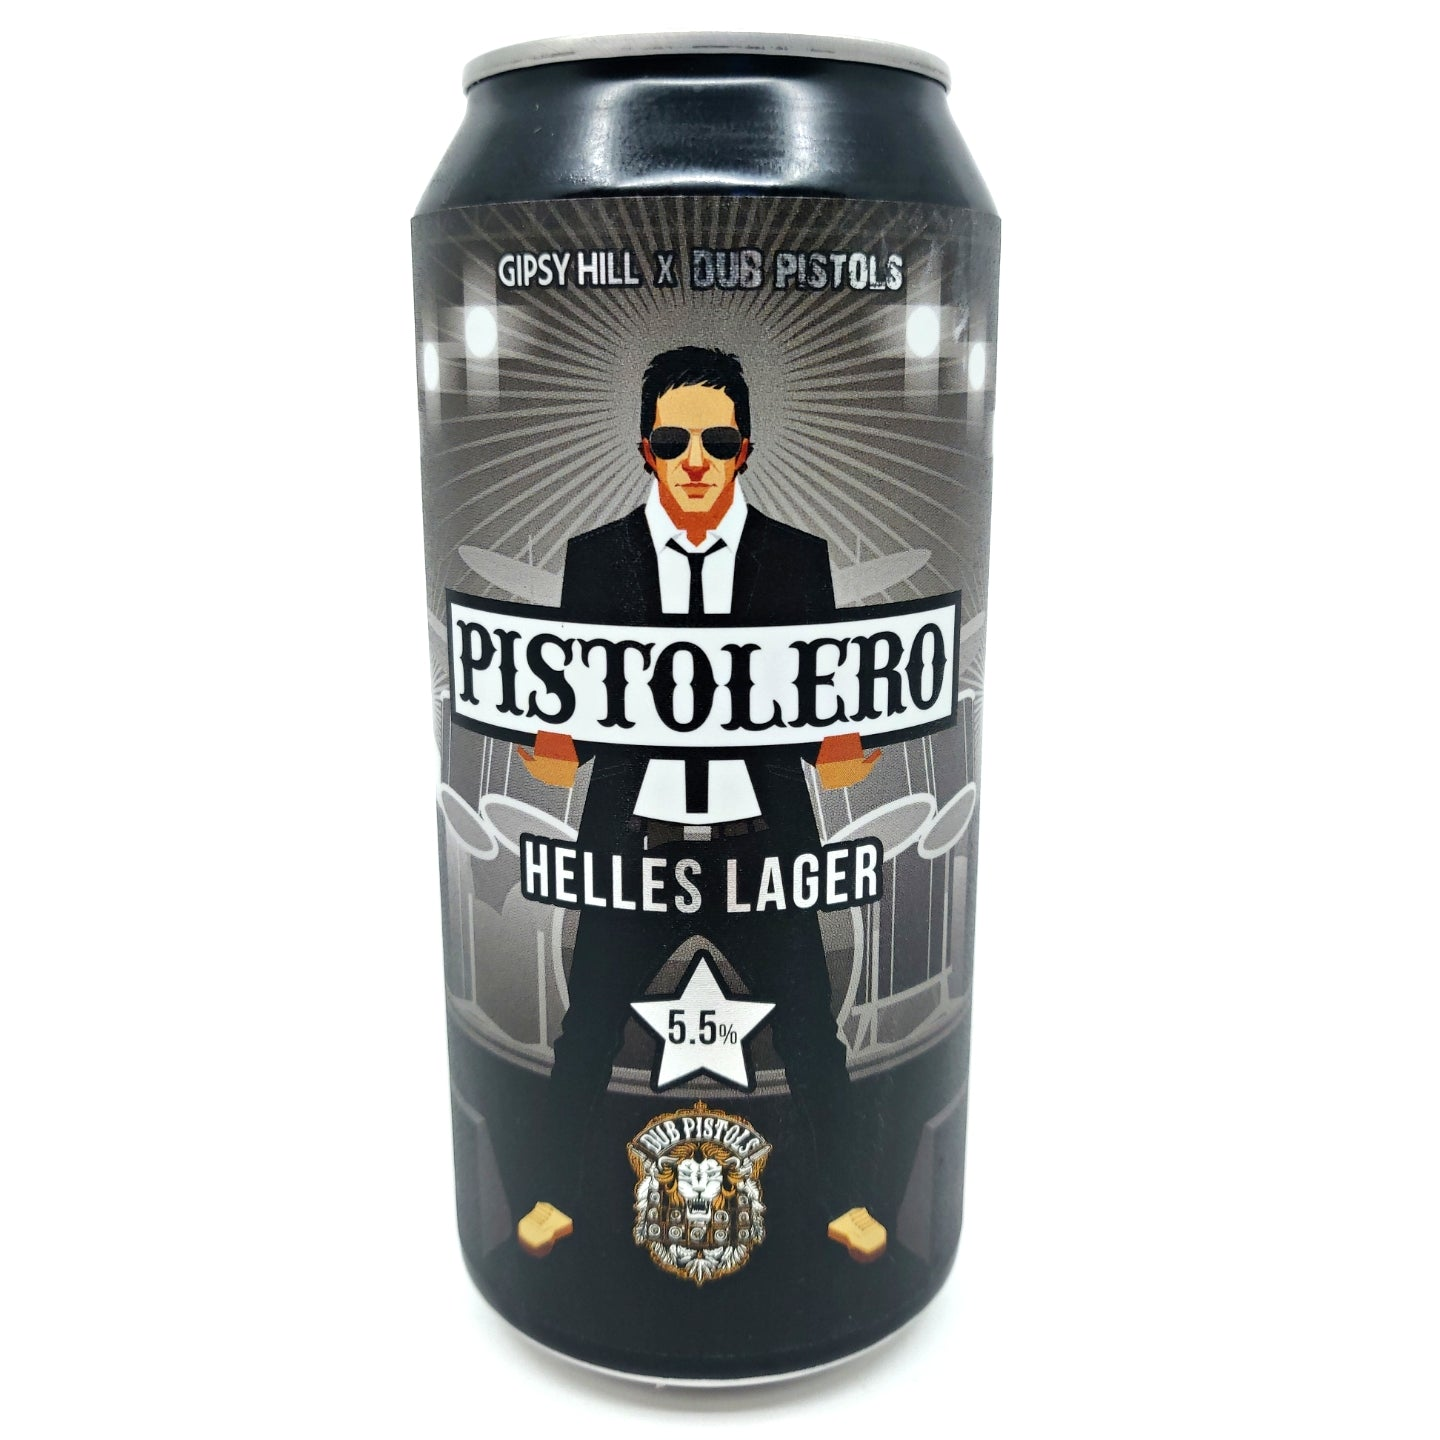 Gipsy Hill x Dub Pistols Pistolero Helles Lager 5.5% (440ml can)-Hop Burns & Black